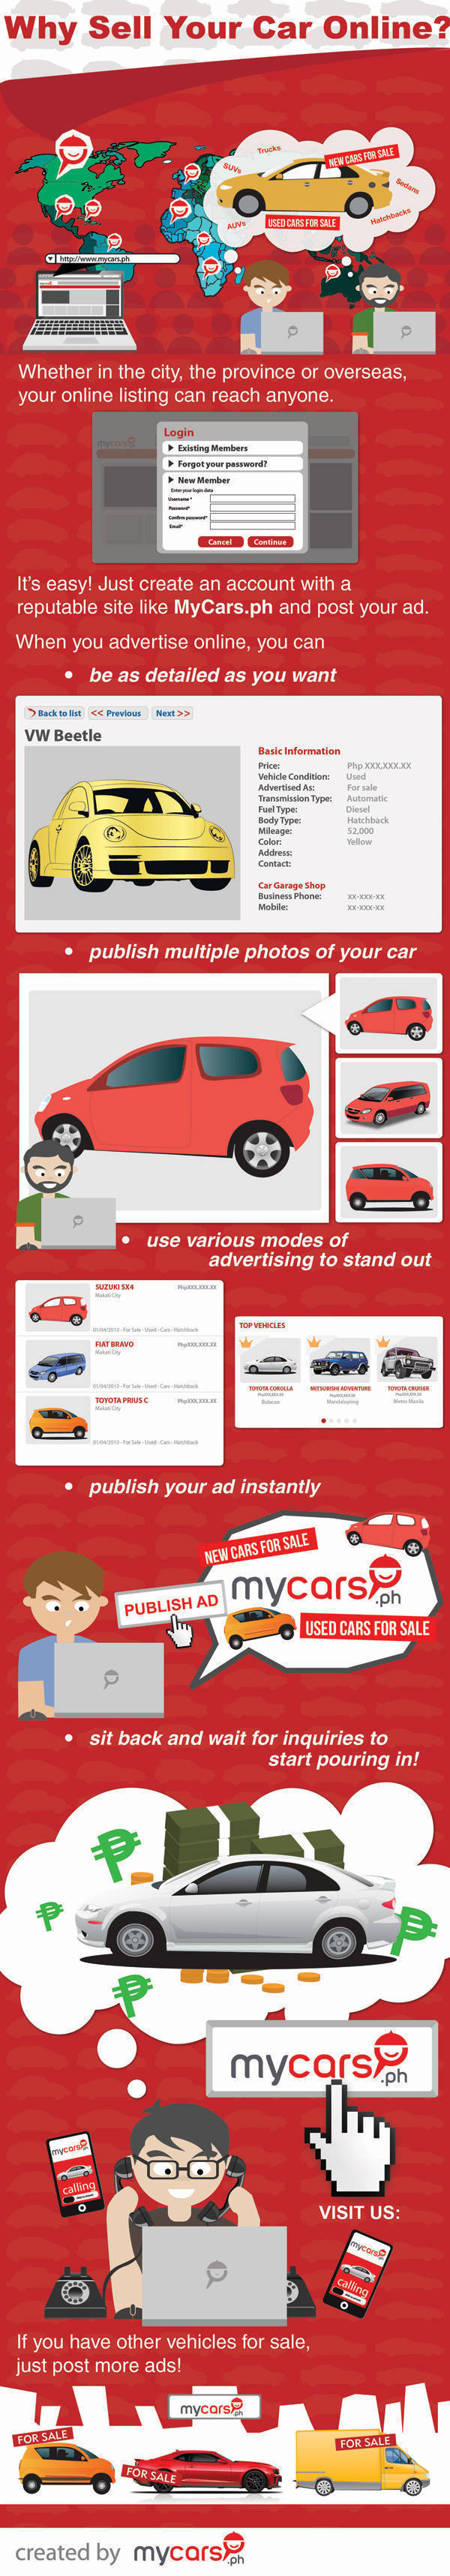 Why sell your car online?